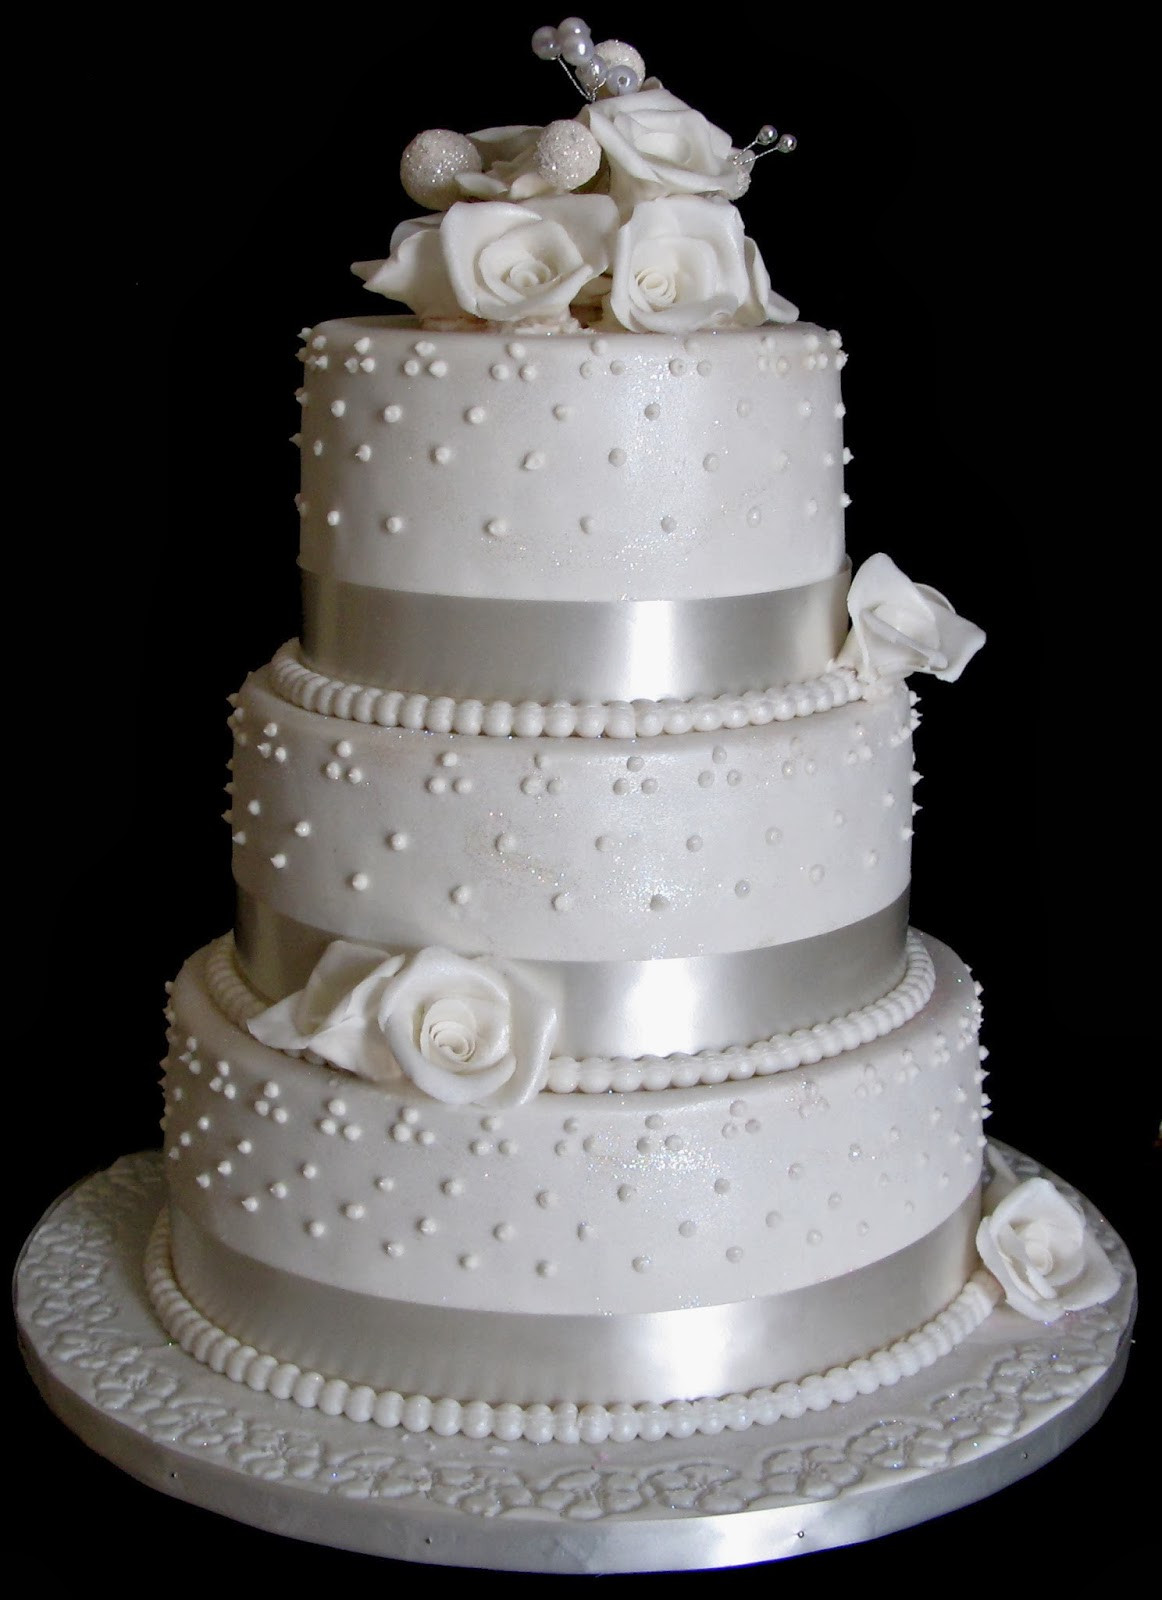 3 Layer Wedding Cakes  Sugarcraft by Soni Three Layer Wedding Cake White Roses